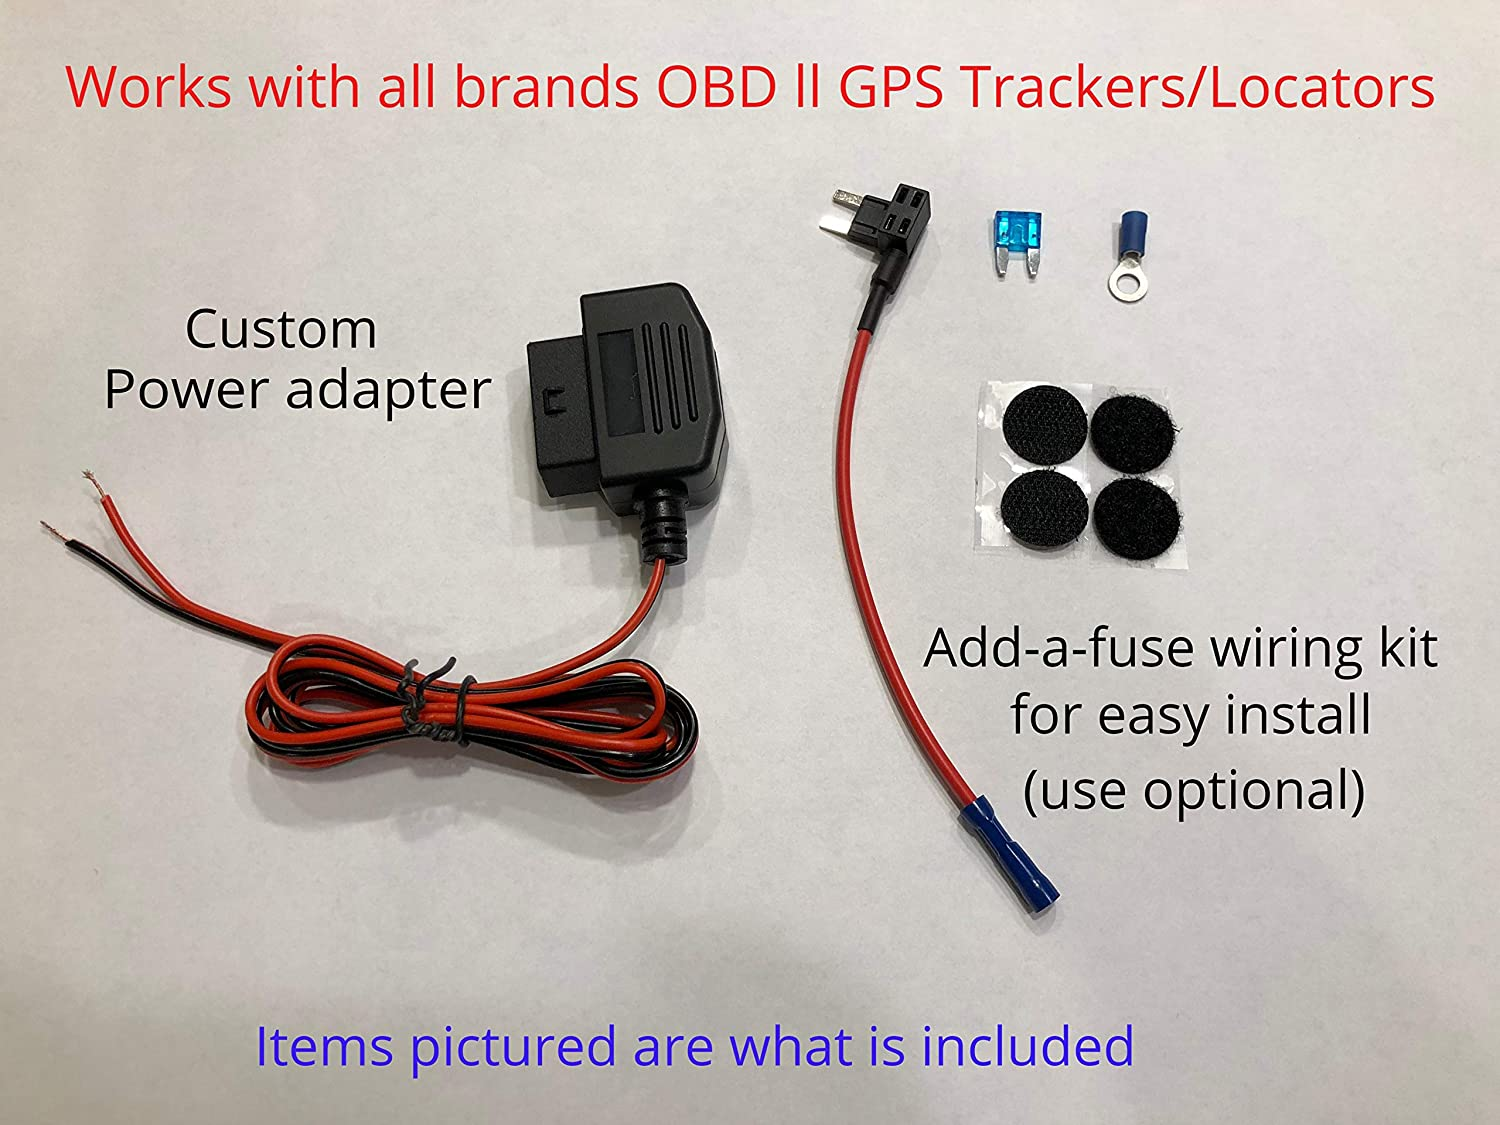 Amazon.com: OBD ll GPS Tracker wired conversion kit power adapter ...